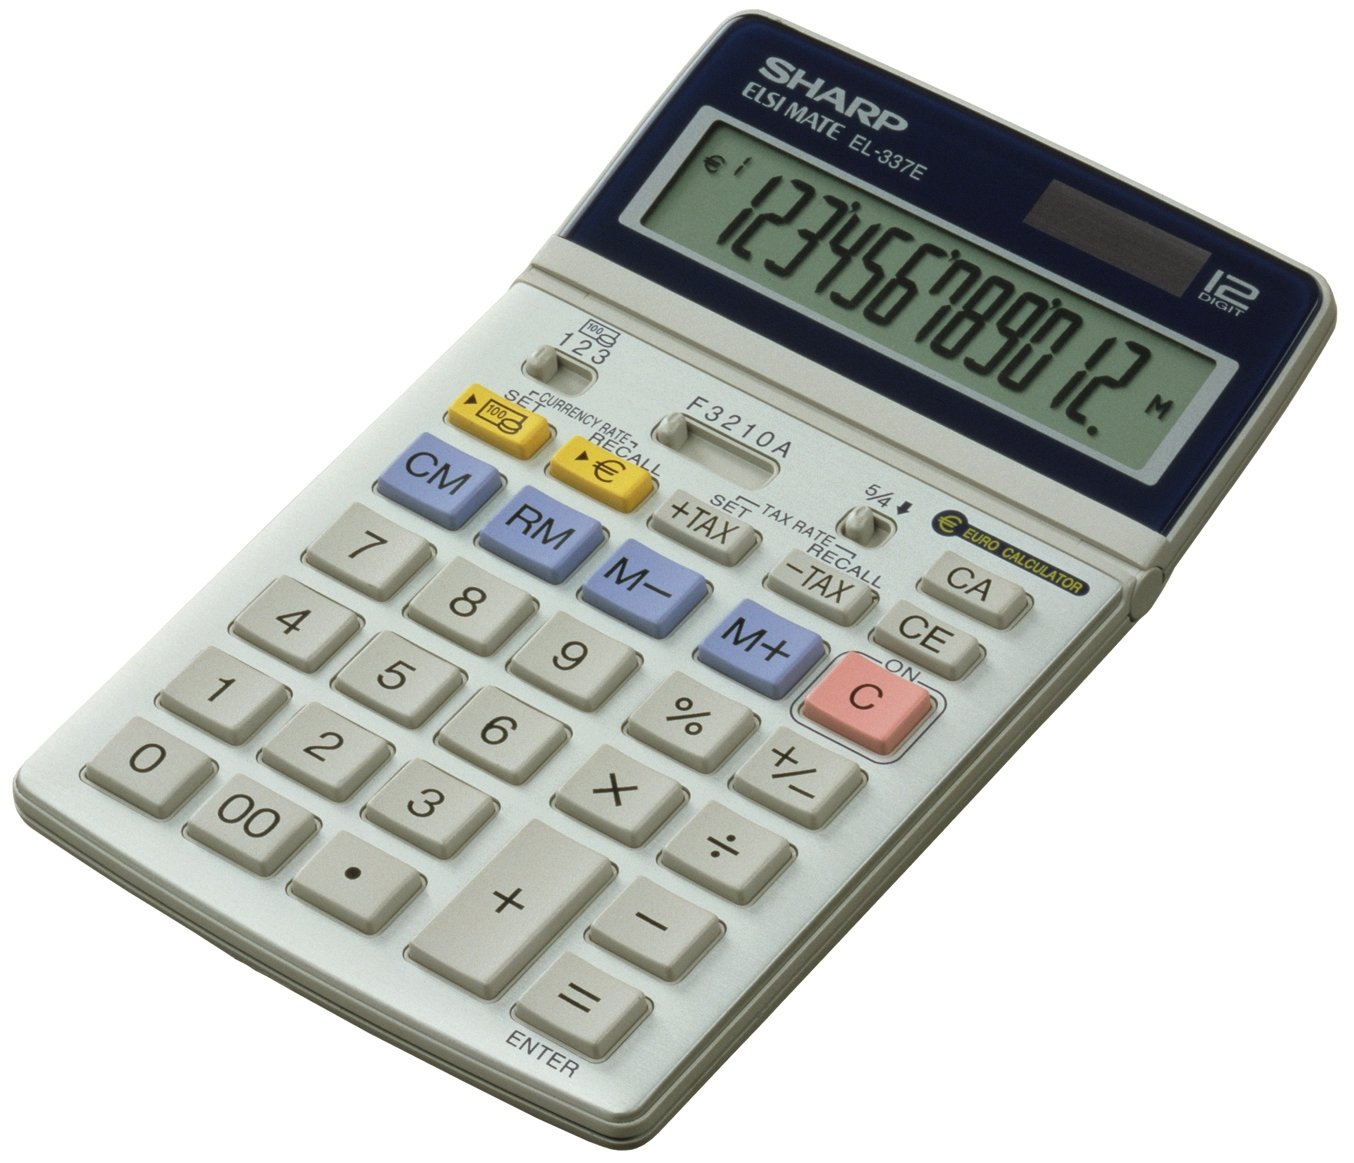 Sharp EL-337C, Semi-desk top calculator with Euro-conversion Desktop Financial calculator Silver - calculators (Semi-desk top calculator with Euro-conversion, Desktop, Financial calculator, Silver, LR-44, 165 g, 108 x 22 x 175 mm) 622443